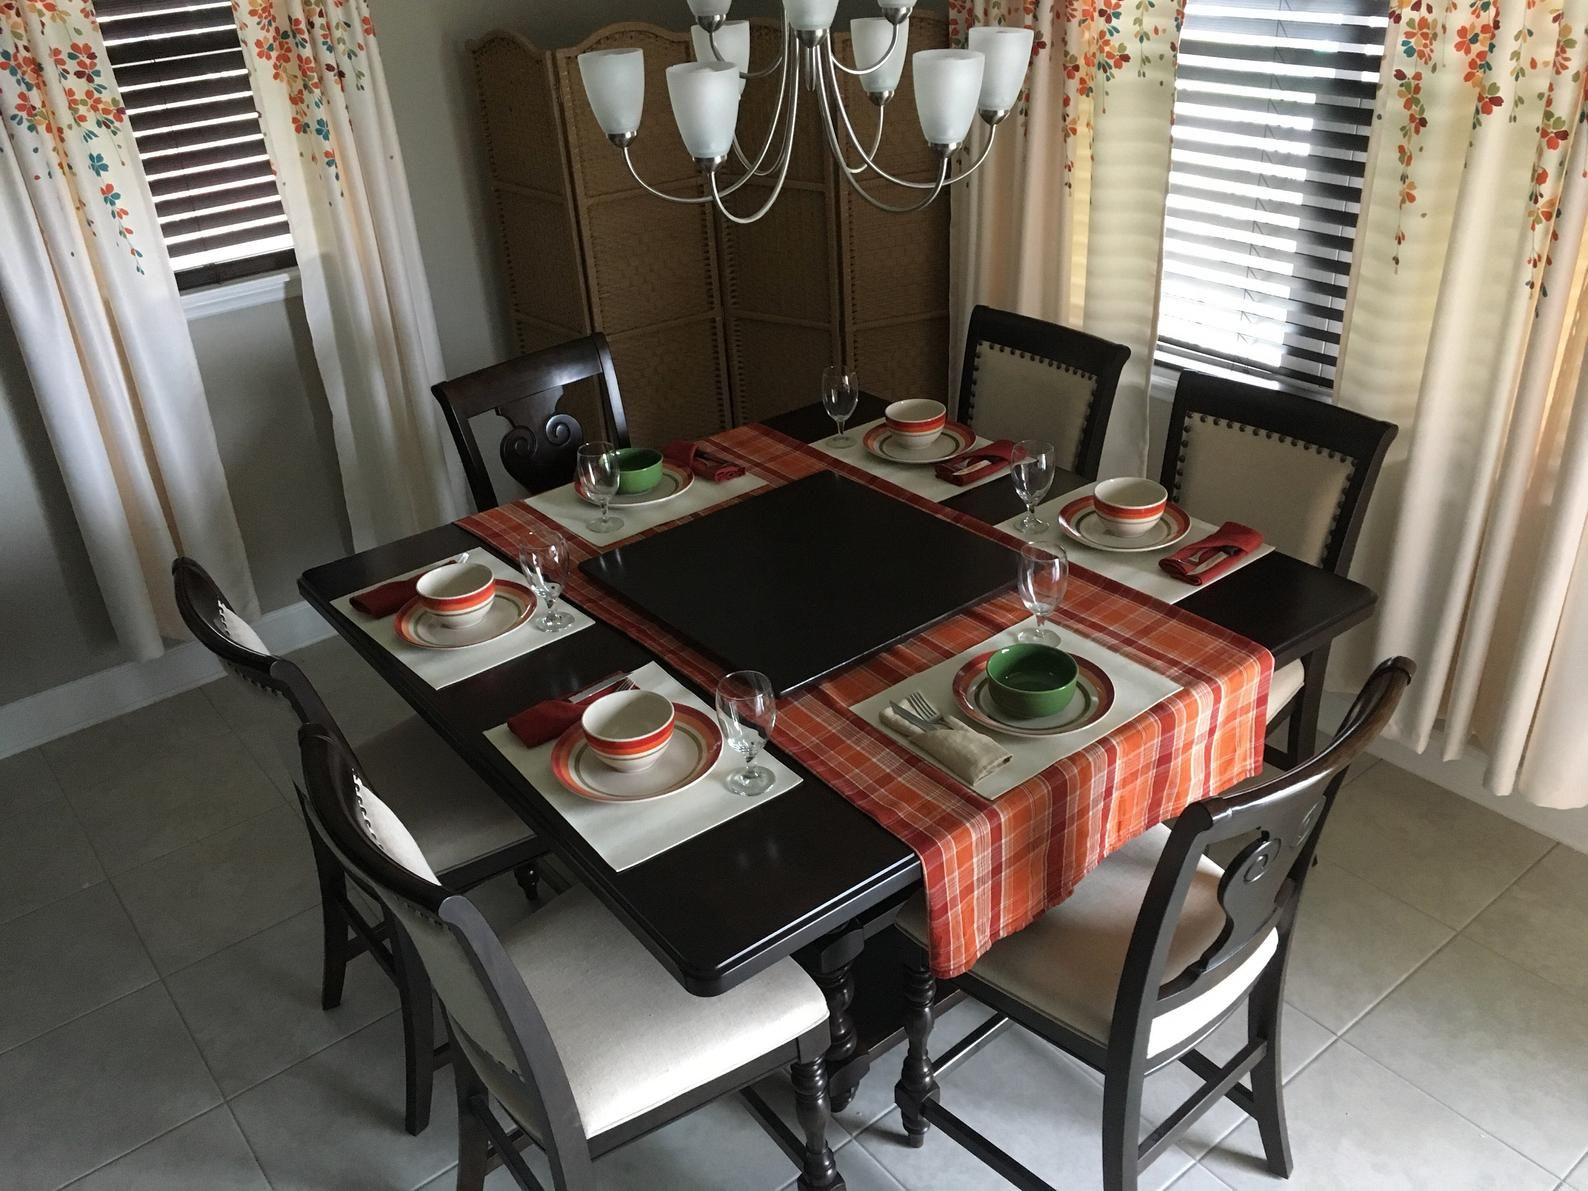 Square Lazy Susan For Square Dining Table 64 72 84 96 Table Or Larger Free Color Stain Matching Large 48 44 42 36 Sizes Square Dining Tables Square Kitchen Tables Square